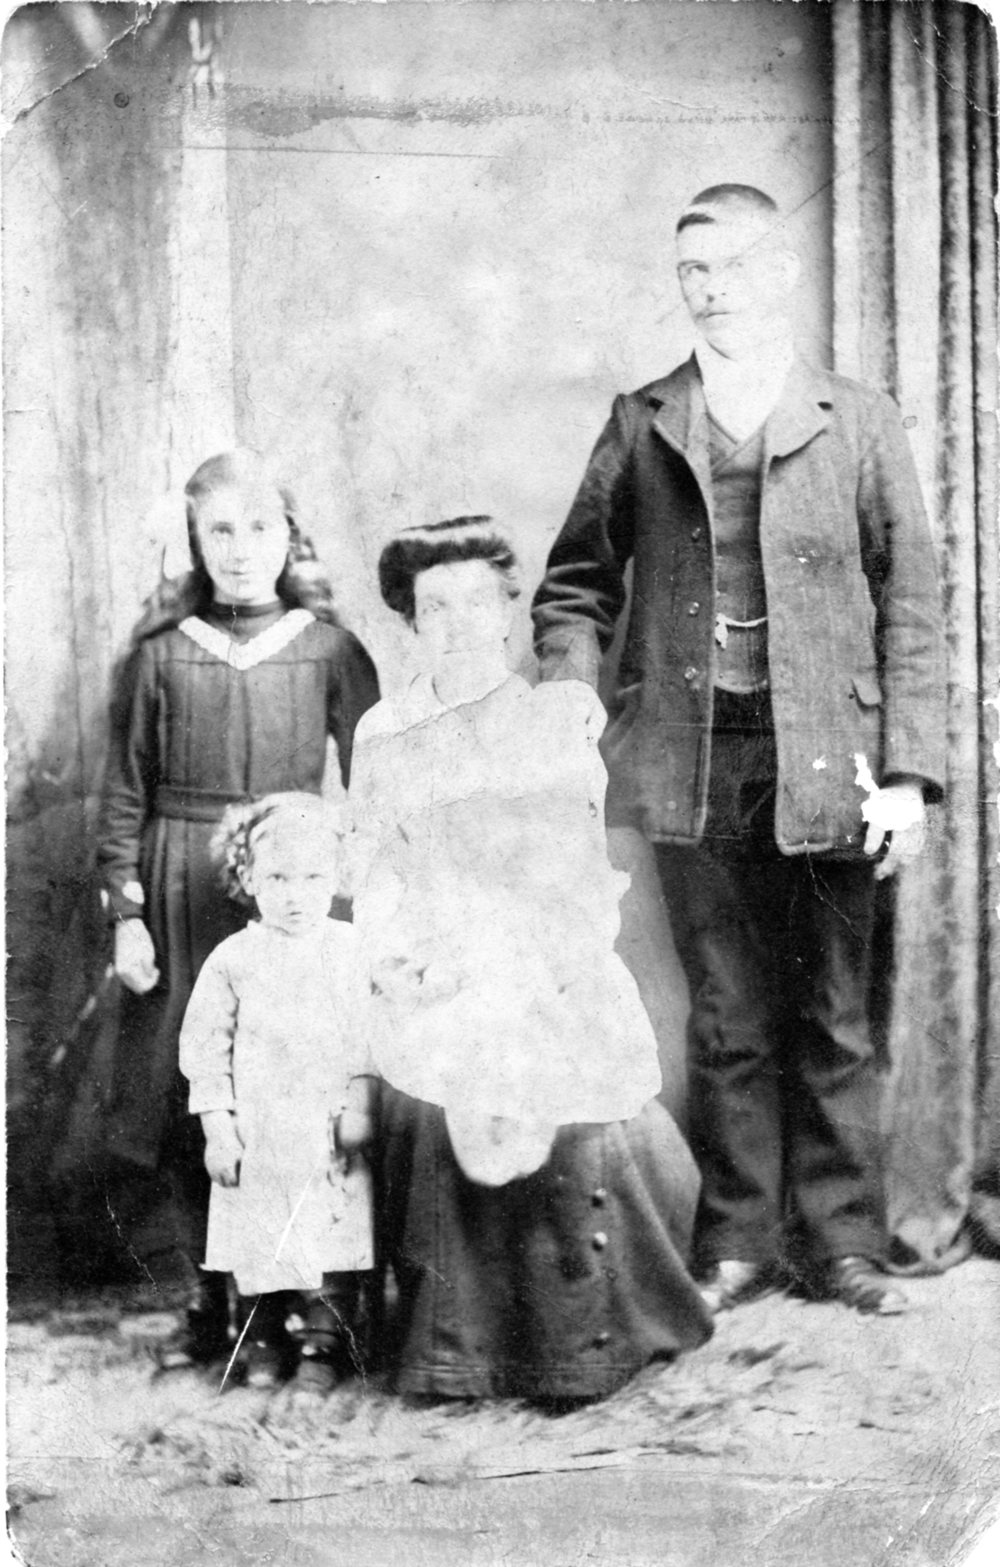 Robert and Lucy Lambert with my grandmother Florence on her knee, Edith is the small girl and Fanny Lambert is the older girl...jpeg